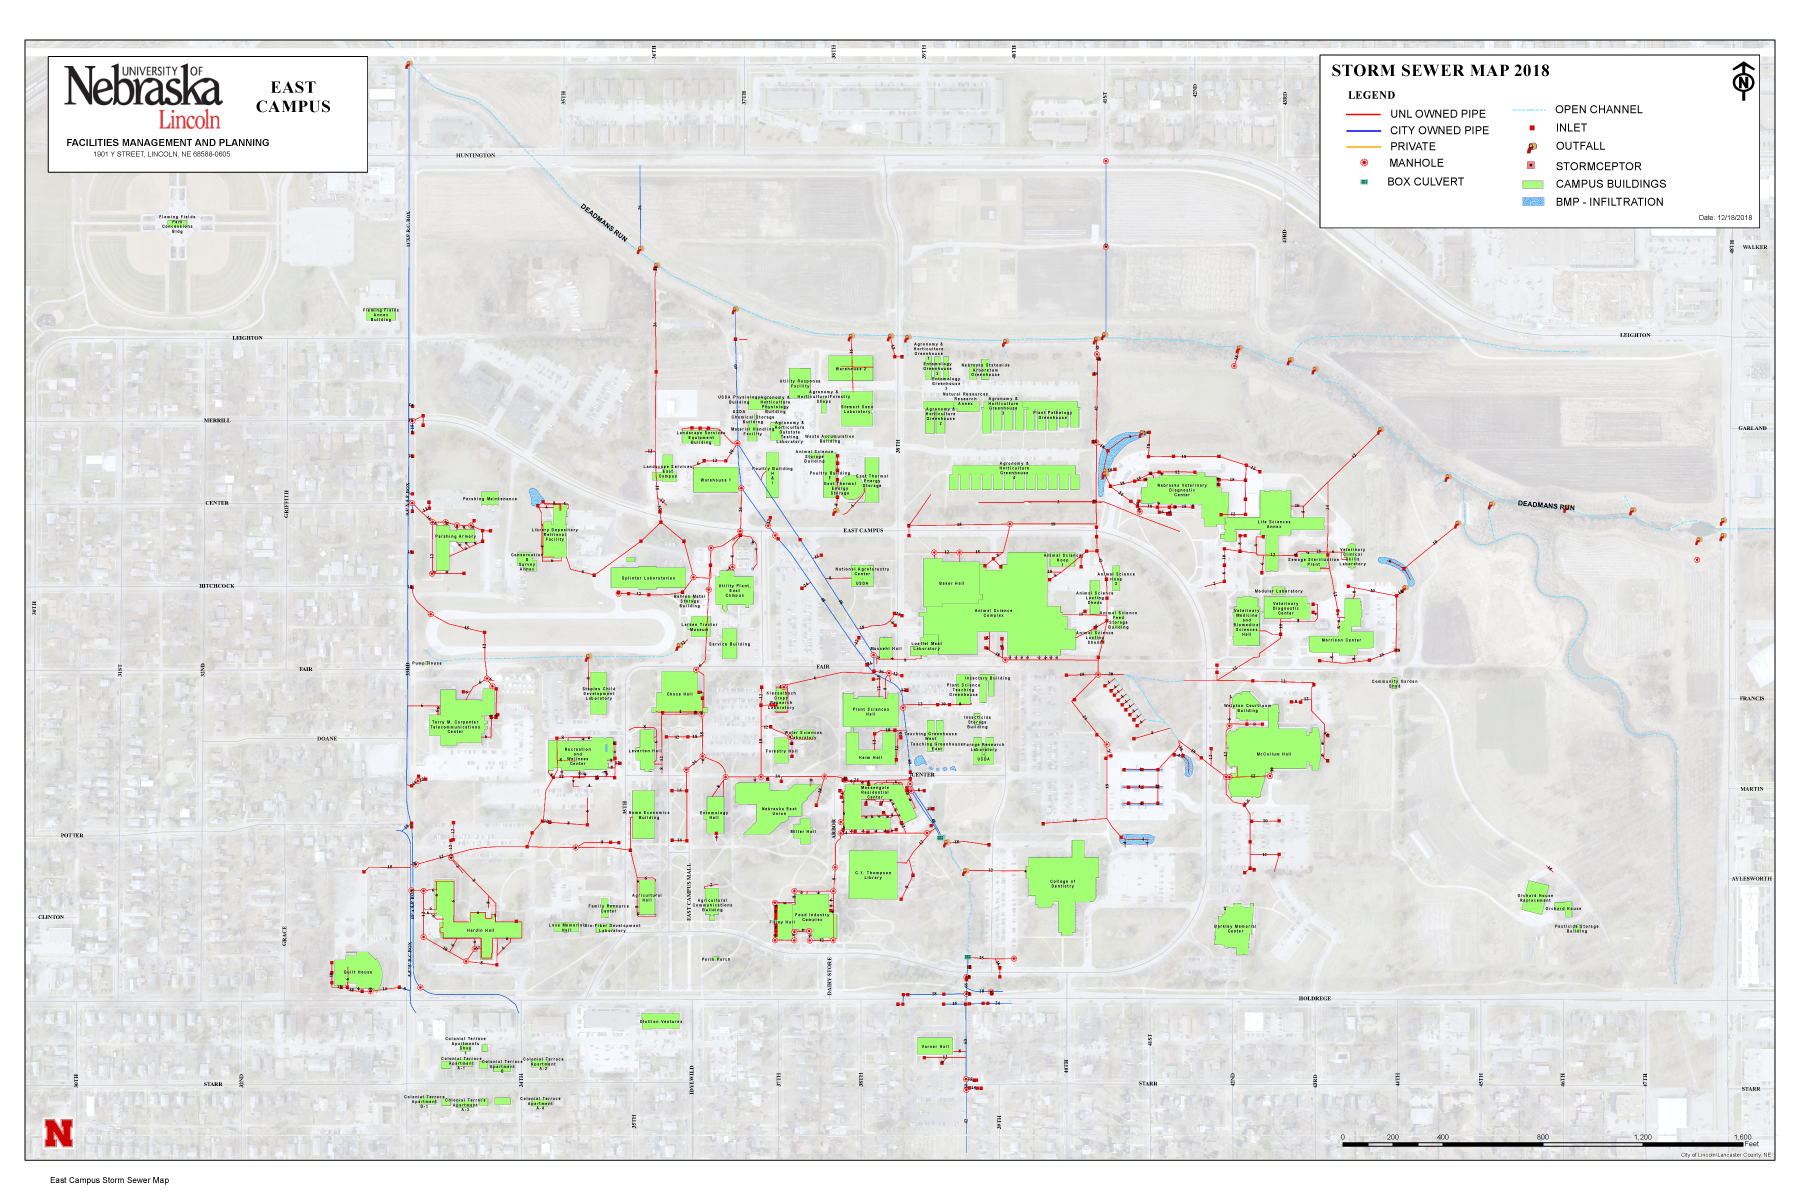 East Campus Storm Sewer Map